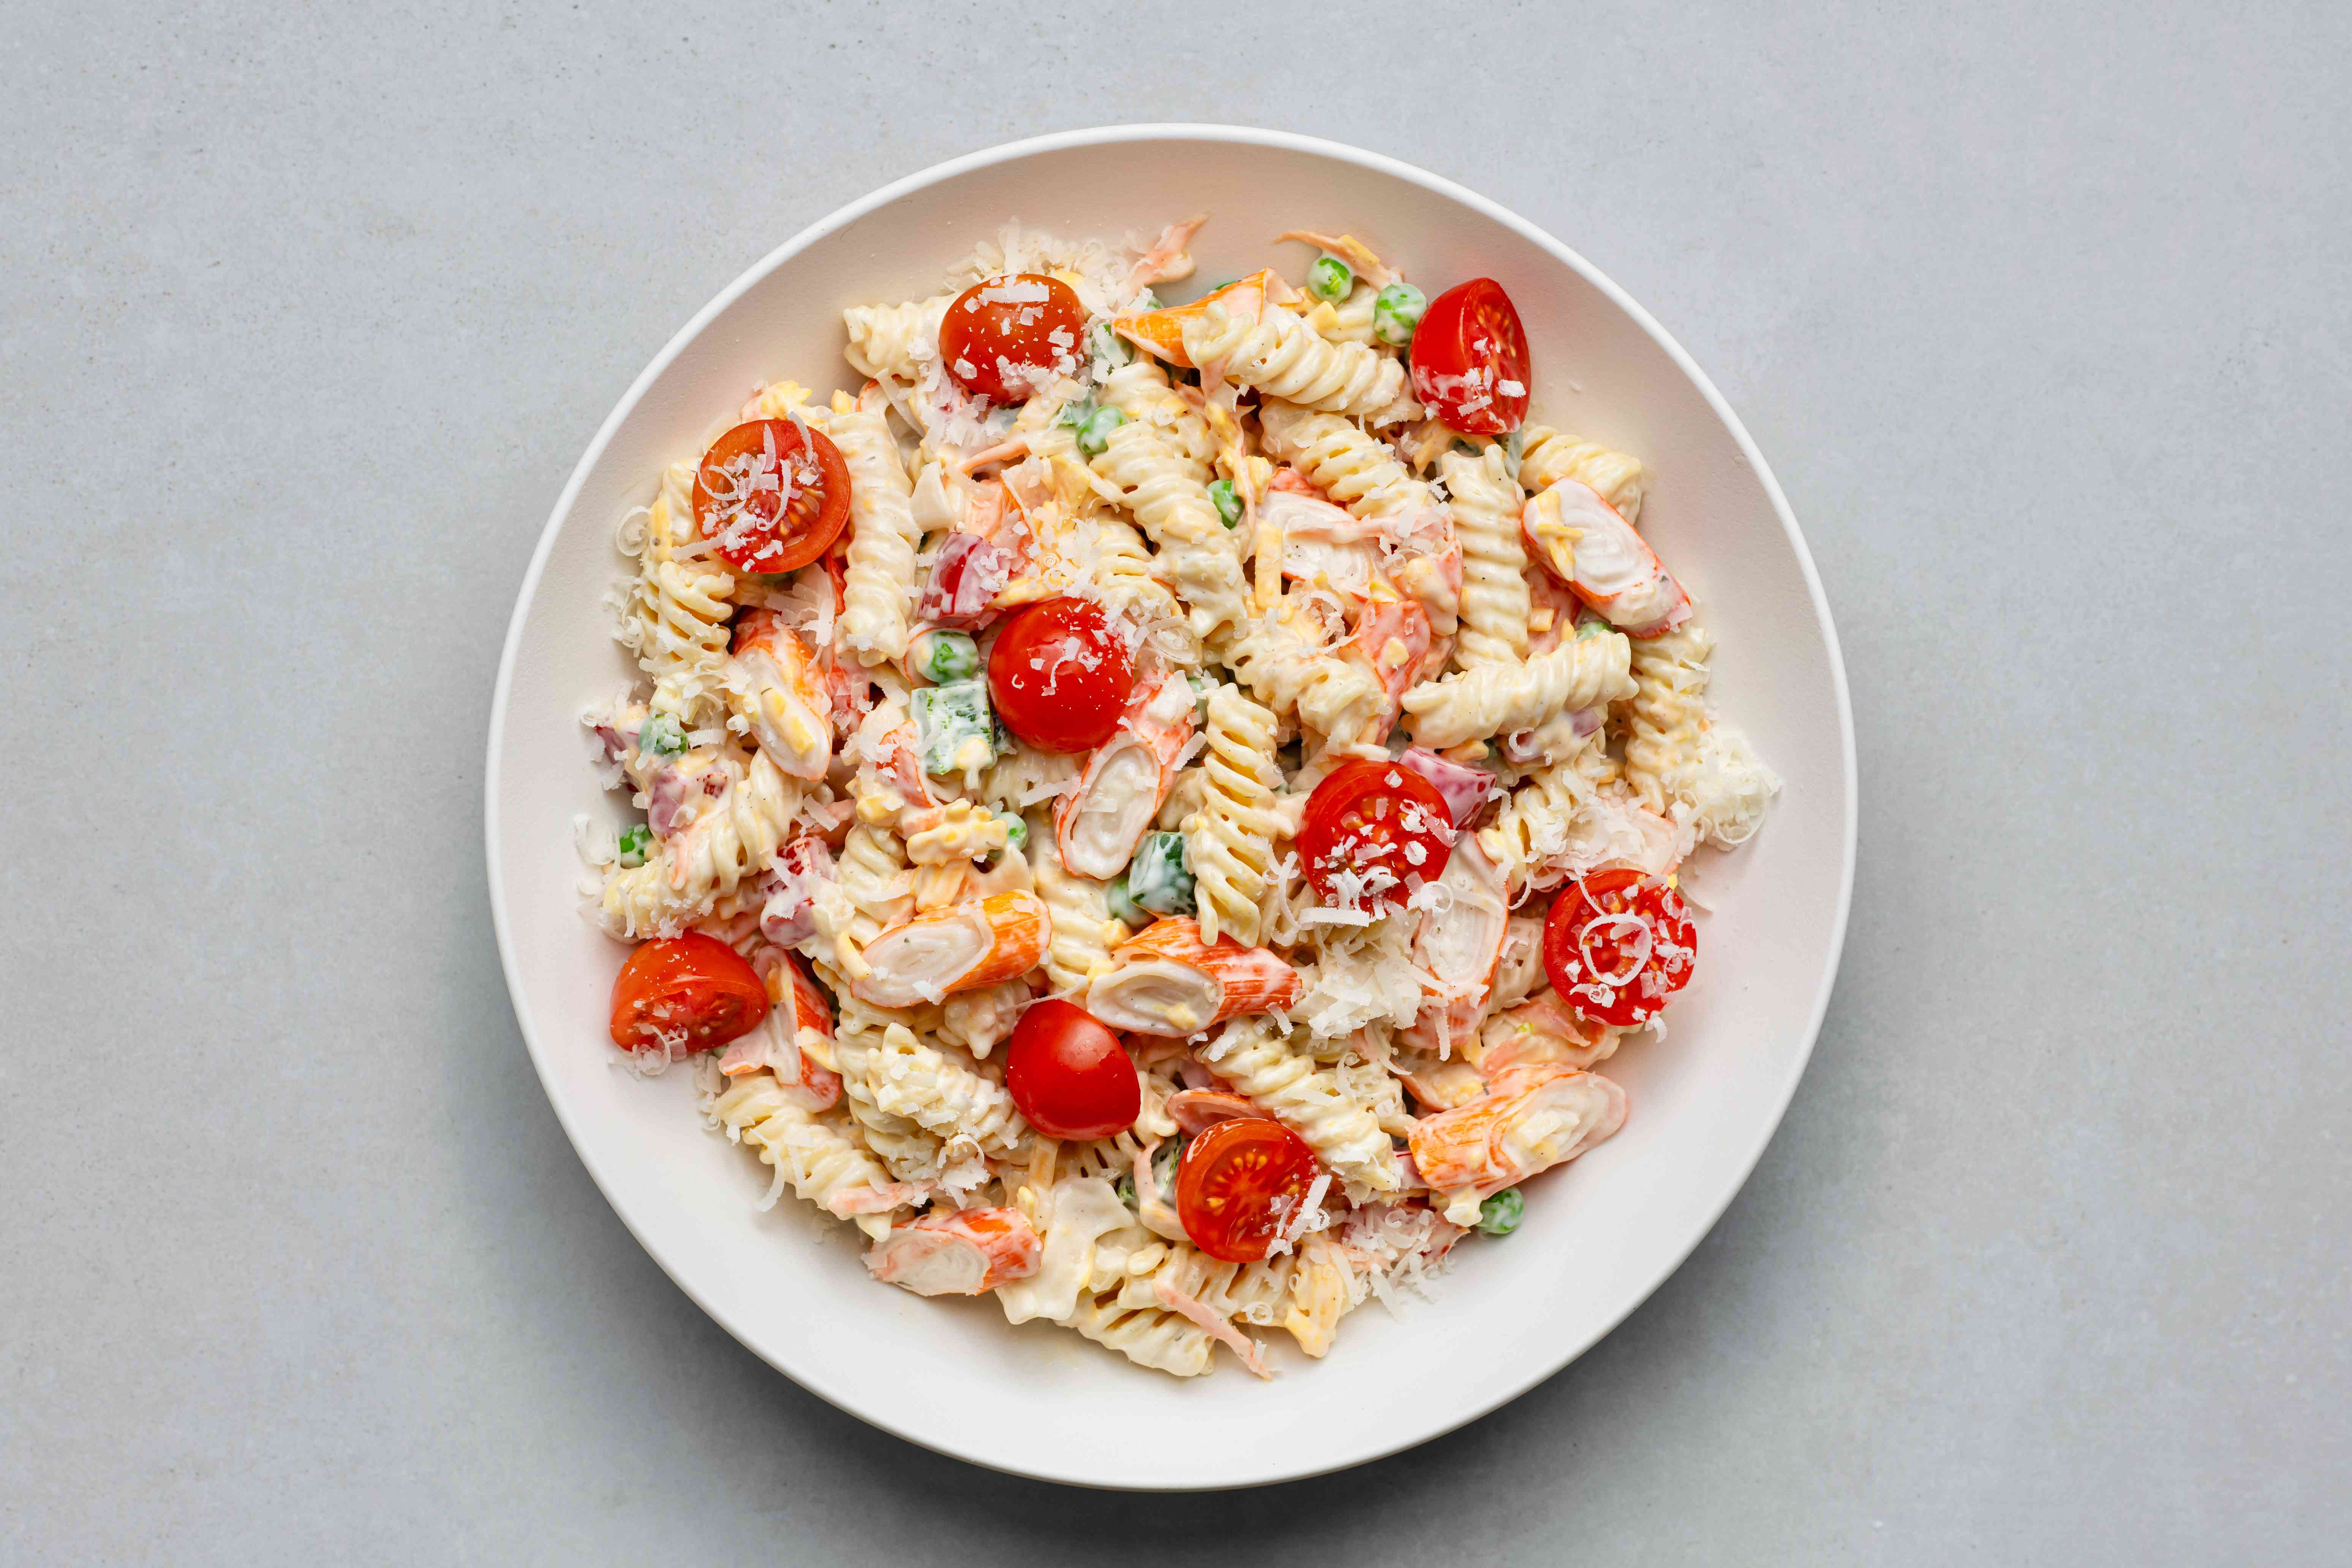 Summer Seafood Pasta Salad, topped with cheese and tomatoes